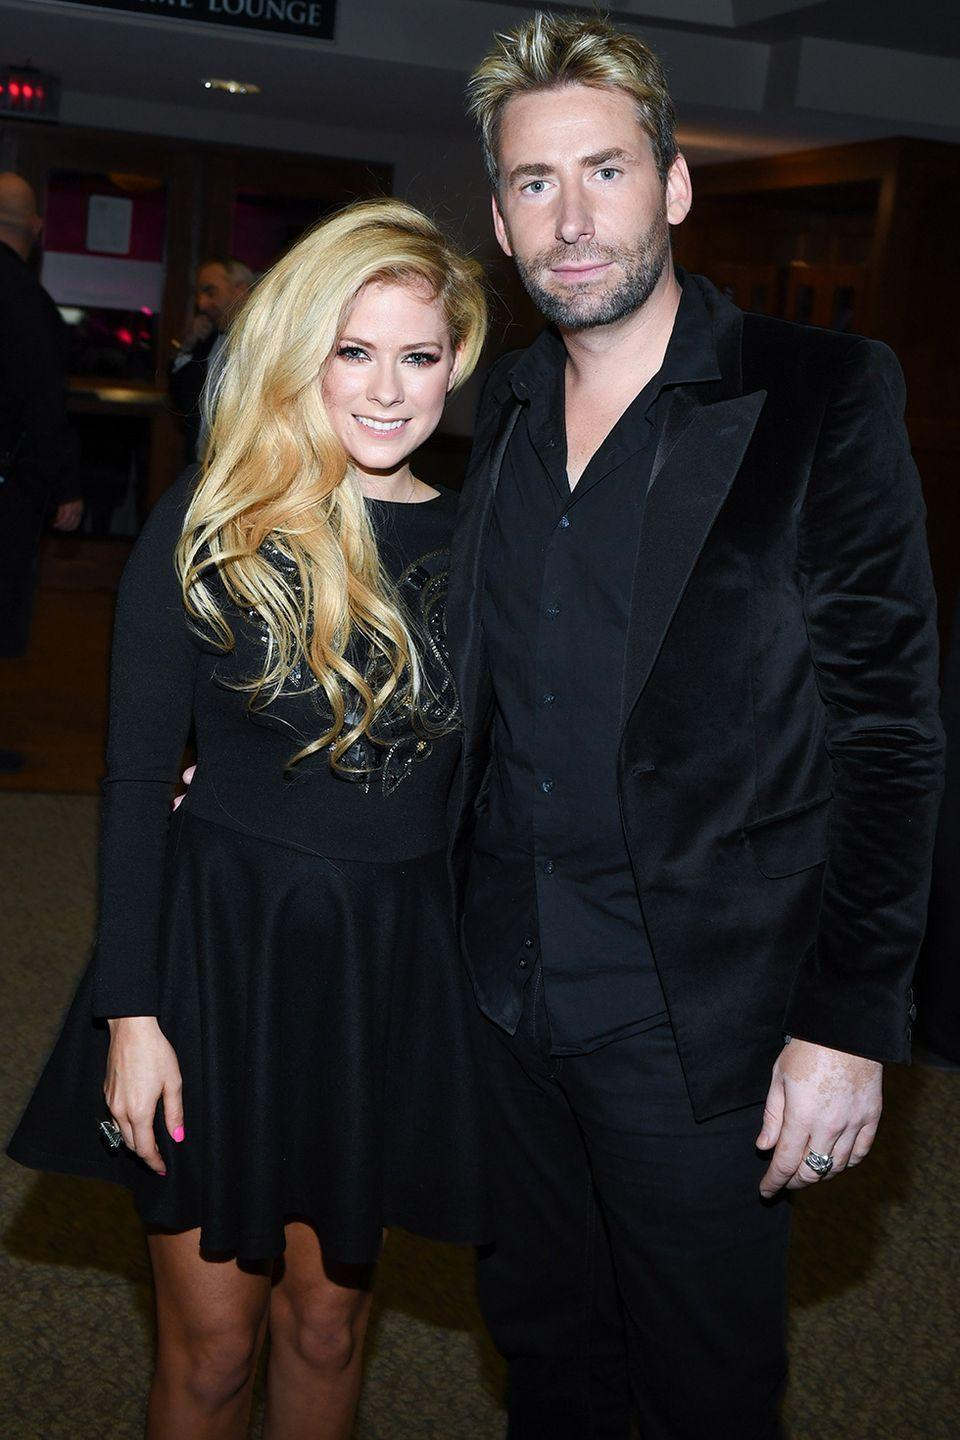 "<p>The singer got engaged to the Nickleback frontman within six months with a 14-carat ring, per <a class=""link rapid-noclick-resp"" href=""https://people.com/celebrity/avril-lavigne-chad-kroeger-engaged/"" rel=""nofollow noopener"" target=""_blank"" data-ylk=""slk:People""><em>People</em></a>. They announced their divorce after two years.</p>"